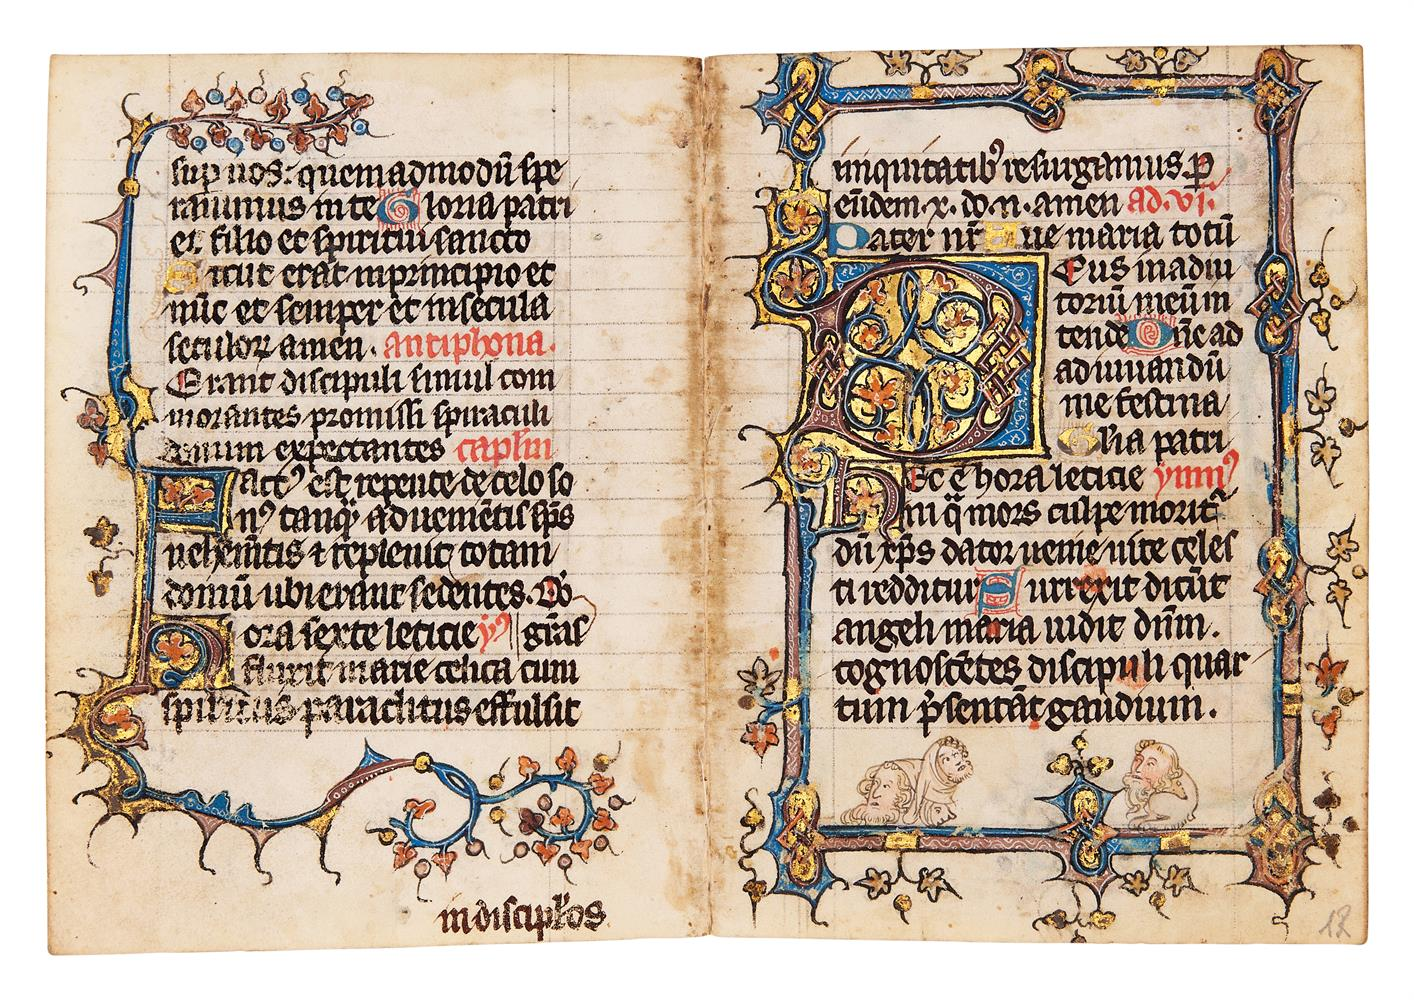 Five leaves from an early Book of Hours, of Dominican Use, in Latin, illuminated manuscript on pa